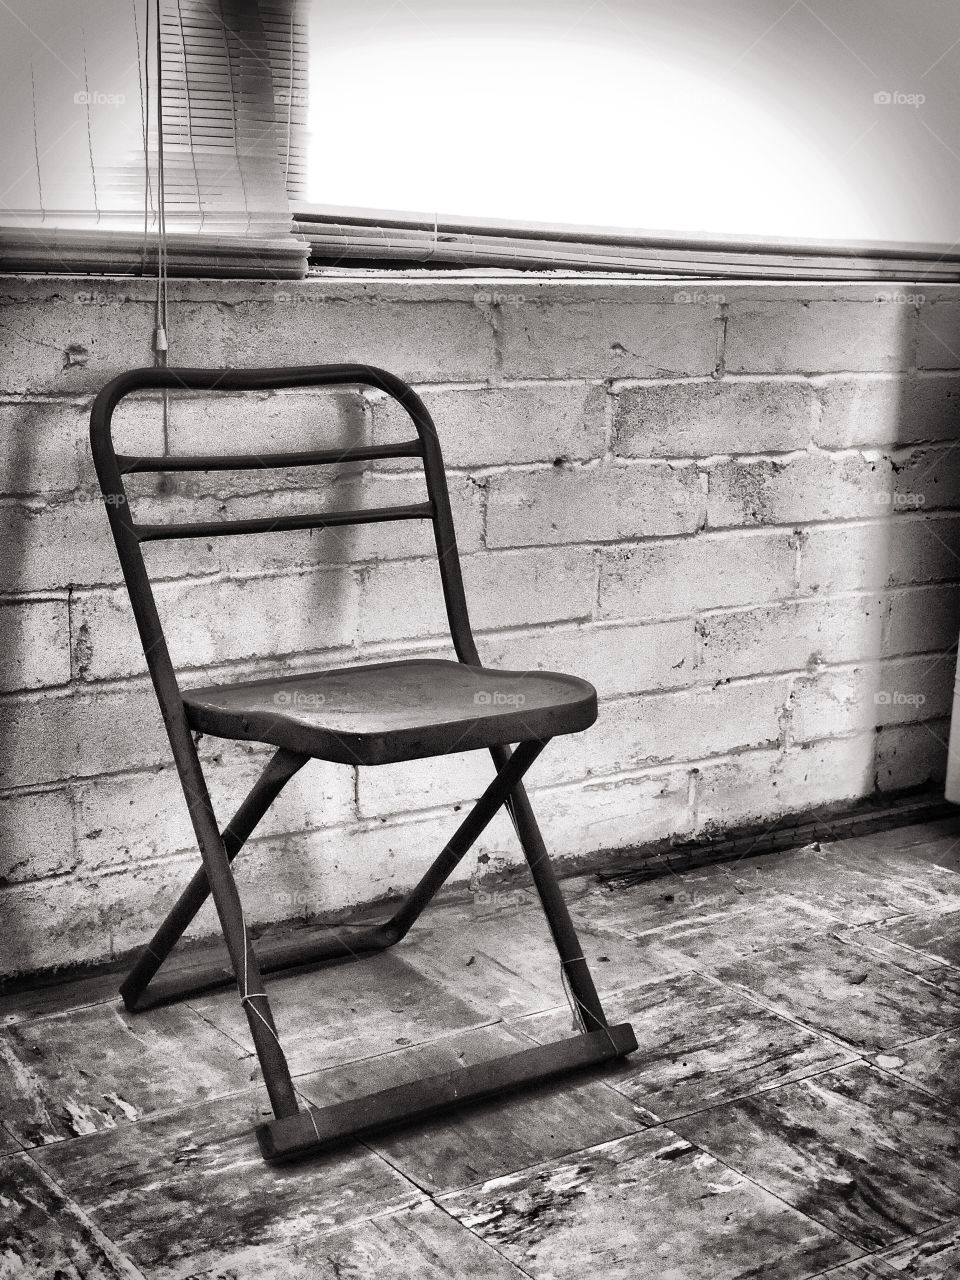 Black and White Photo of Old Vintage Chair